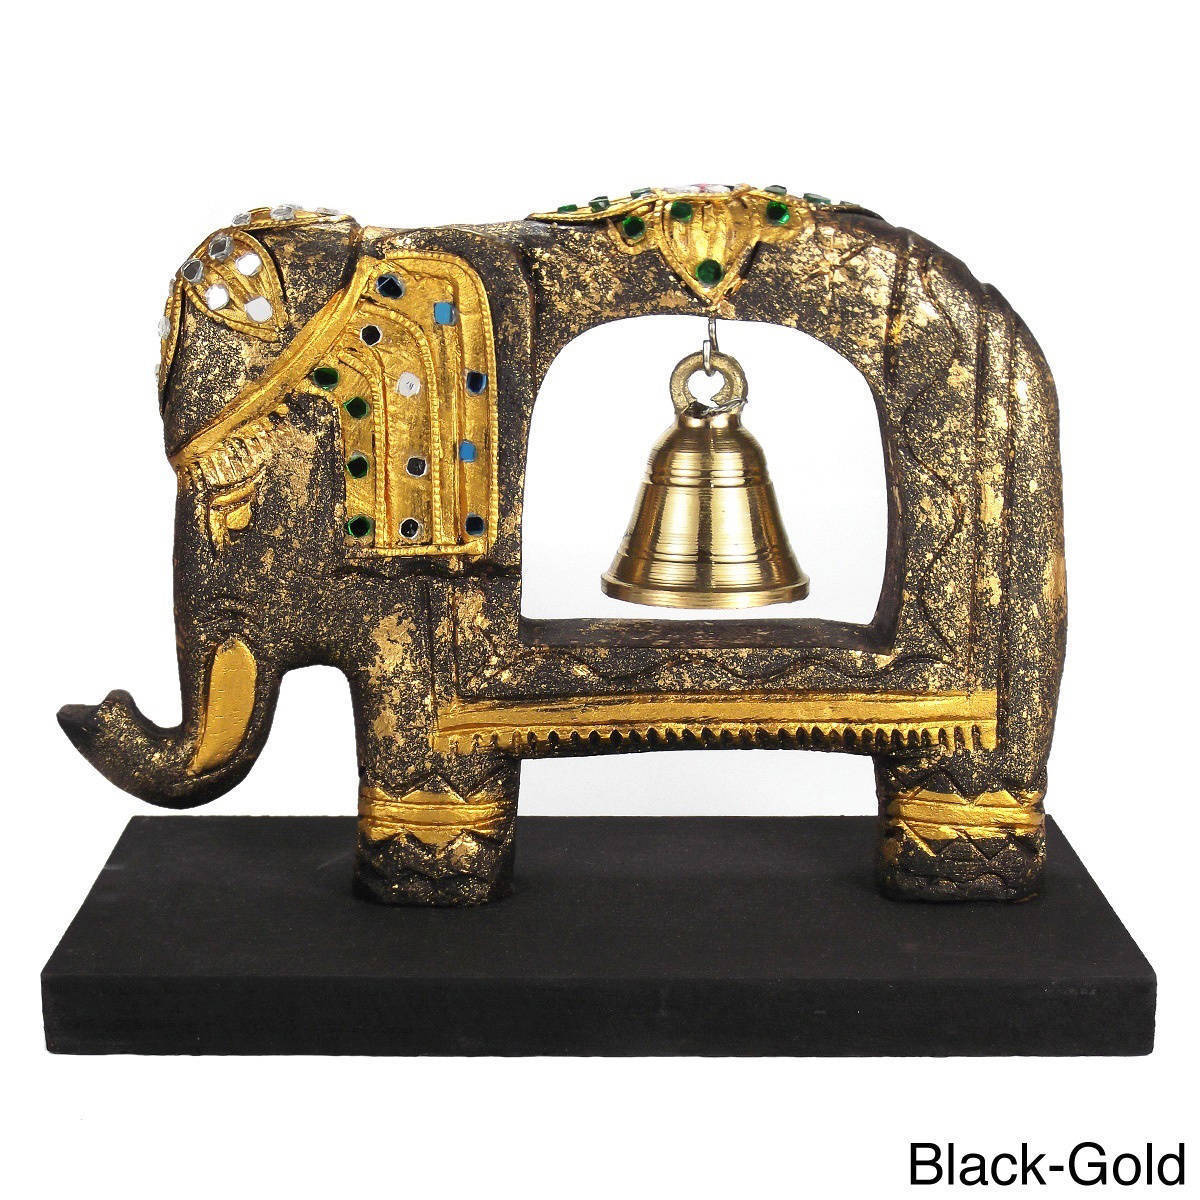 Land of Simple Treasures Handmade Thai Temple Bell Large Hanging Buddhist Bell from Thailand Brass Elephant Bell Authentic Cast Bronze 7.5 Inches